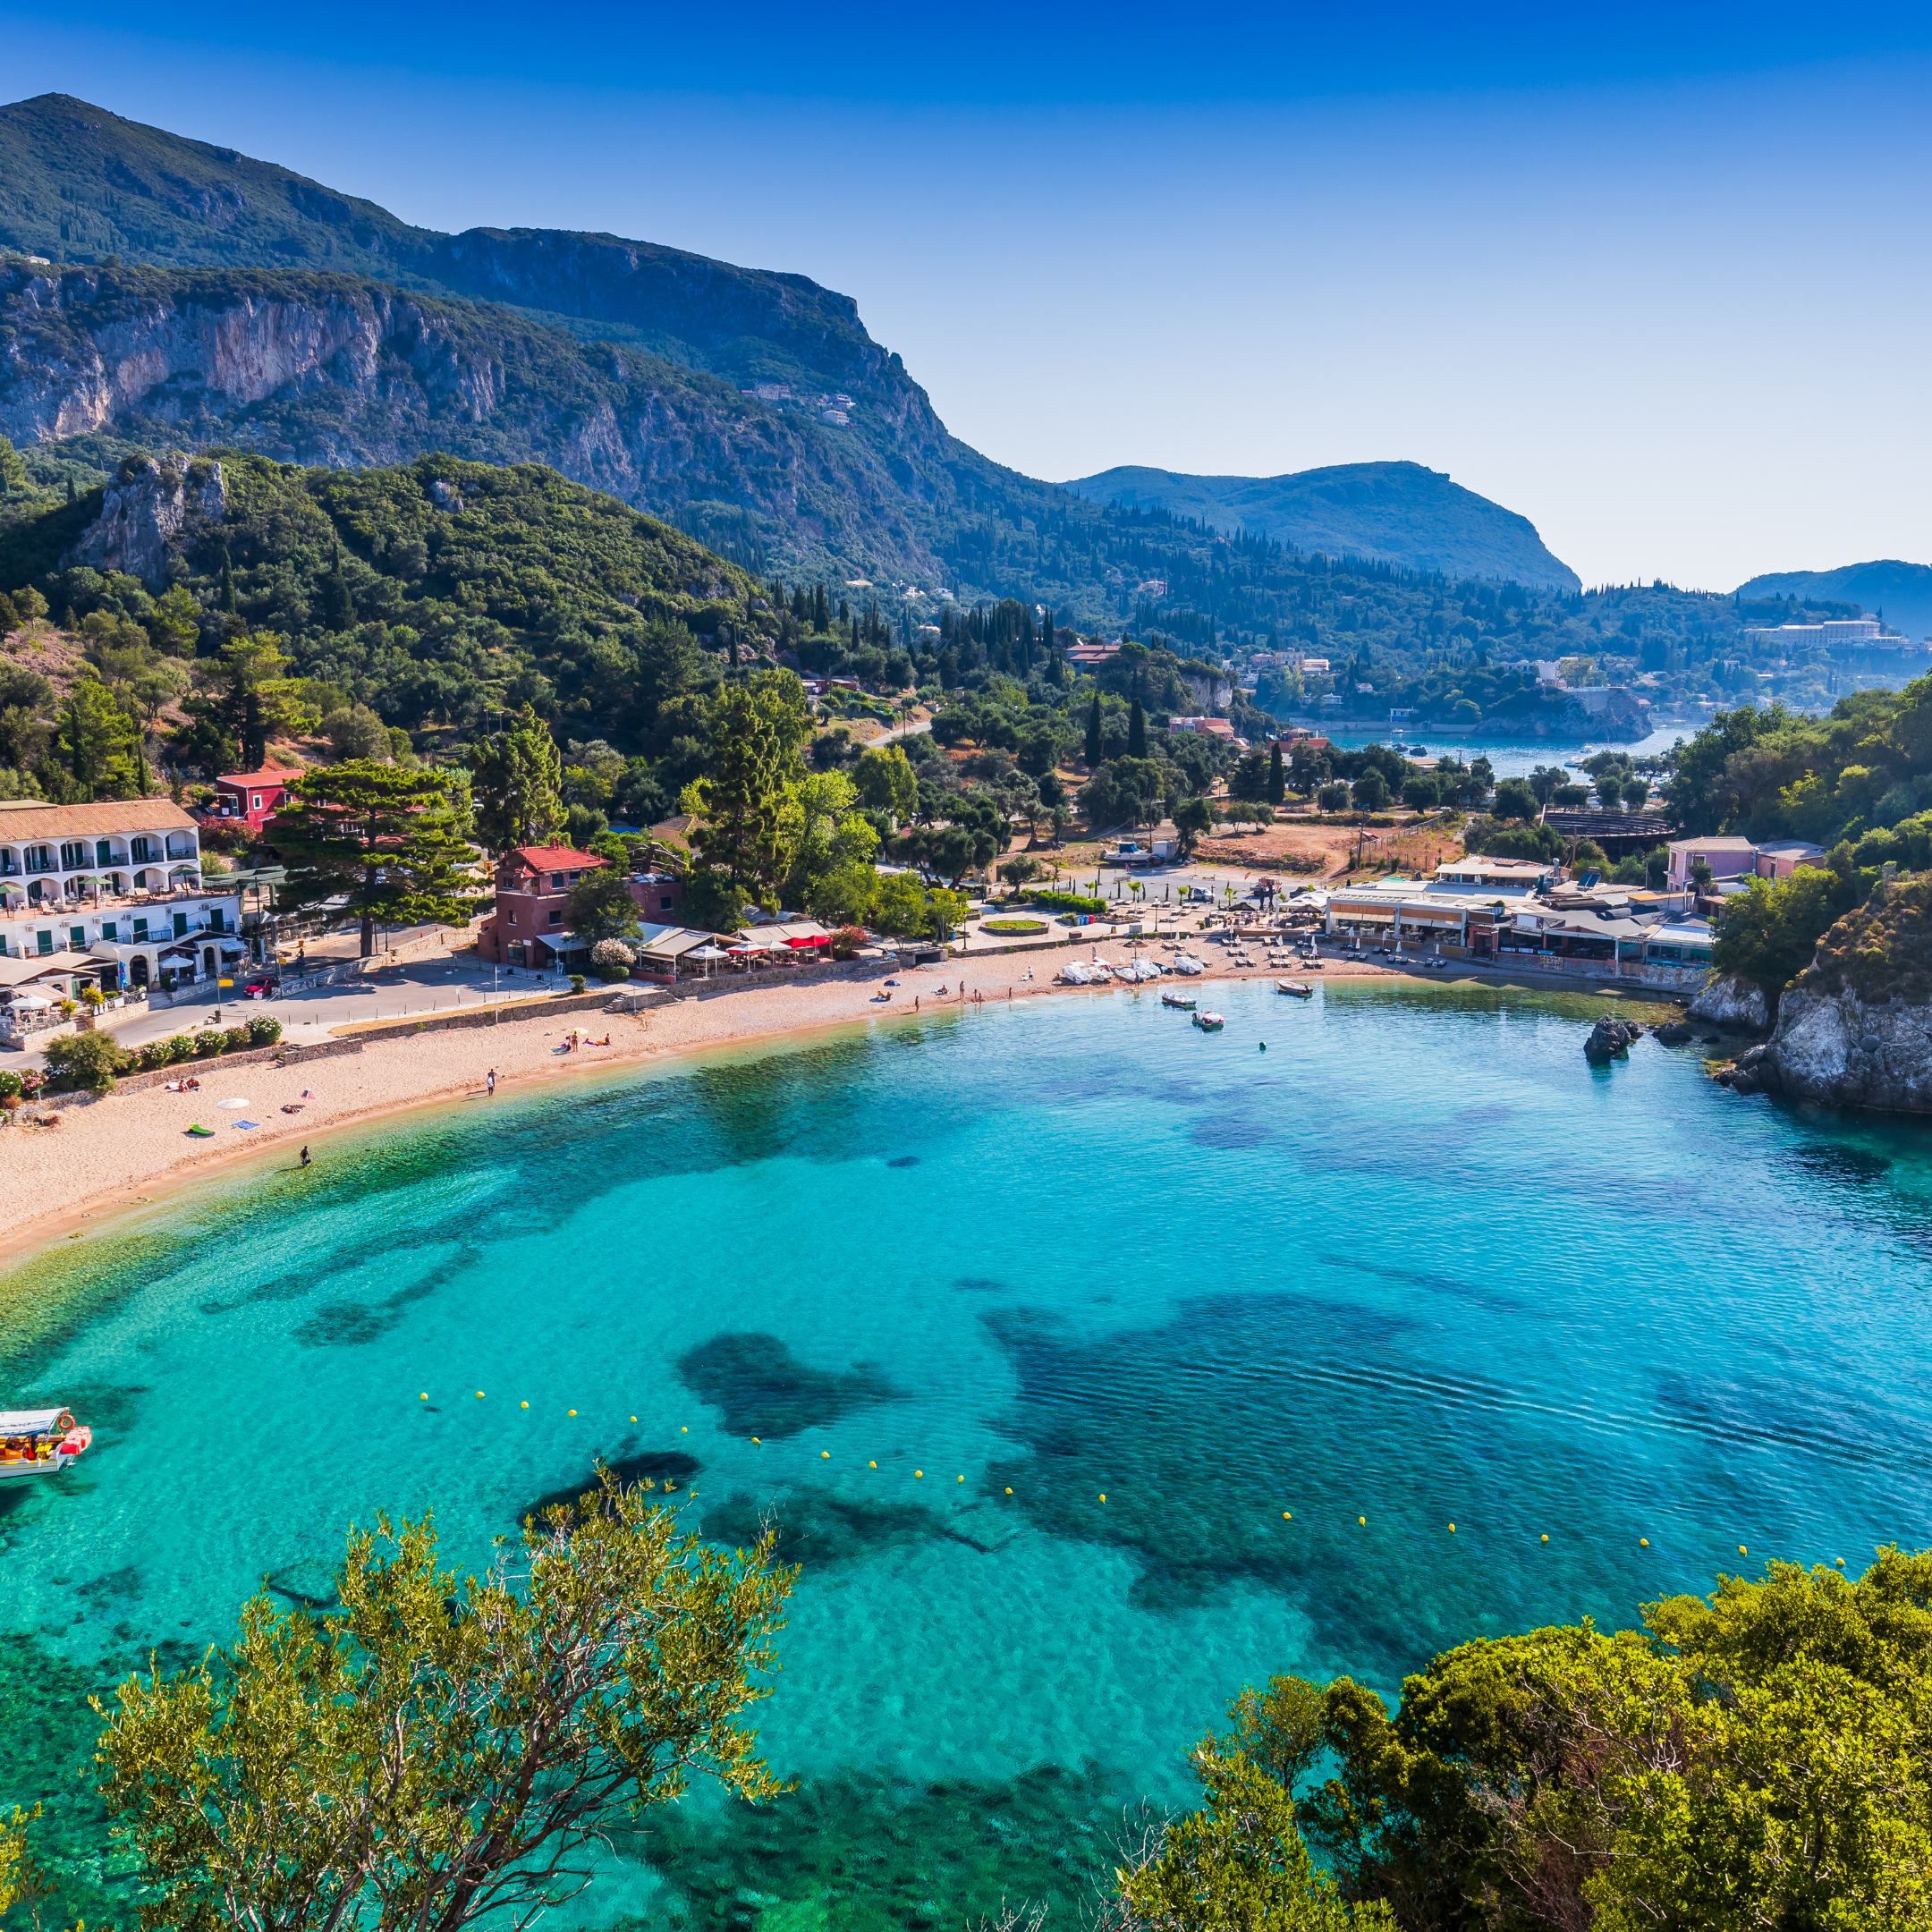 Corfu, Greece - 25 places to visit before turning 25